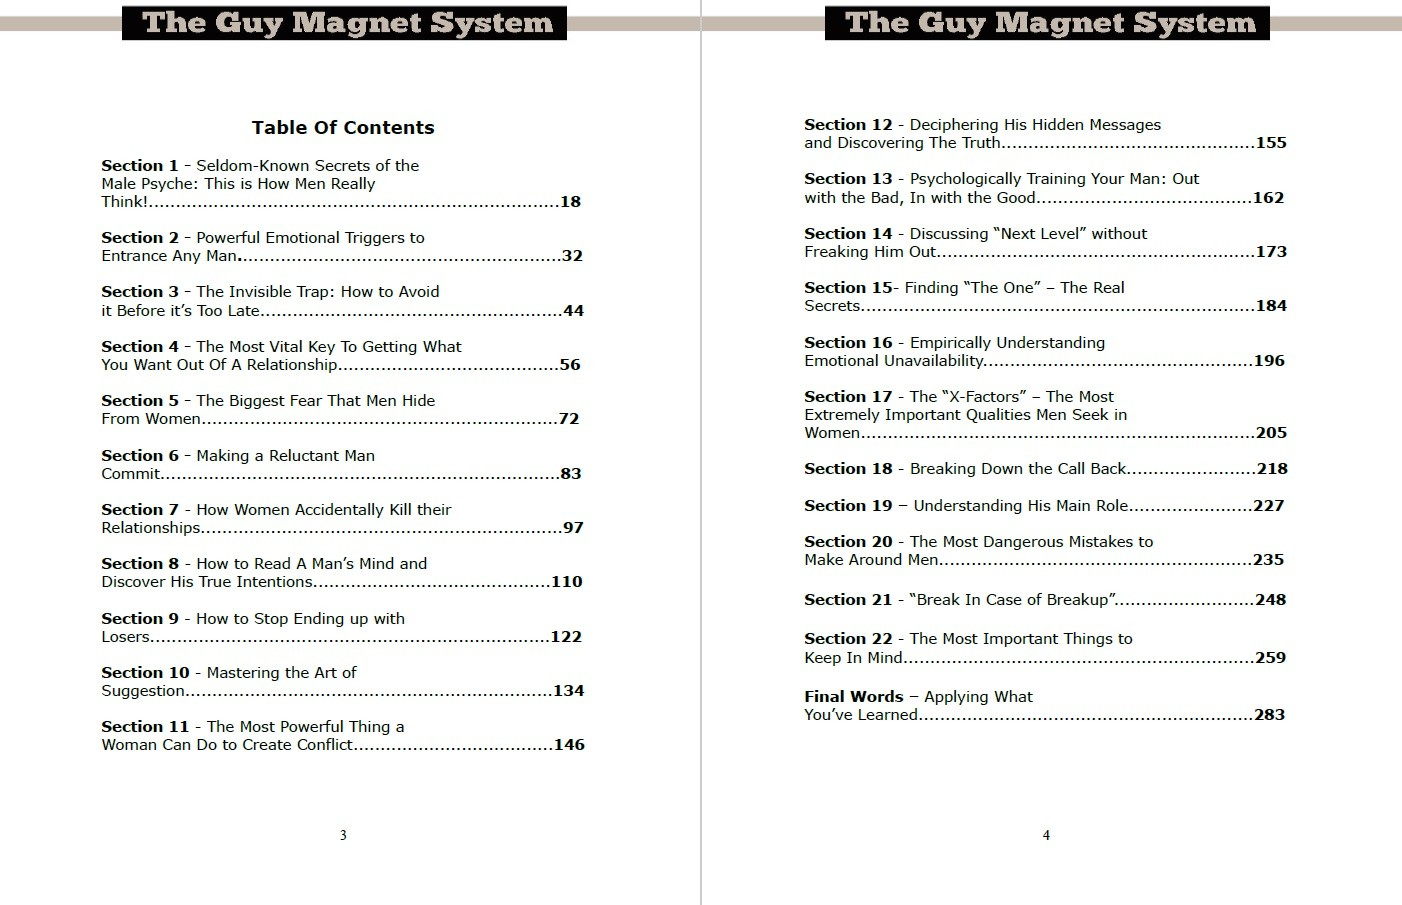 The Guy Magnet System Part 1 - Table of Contents